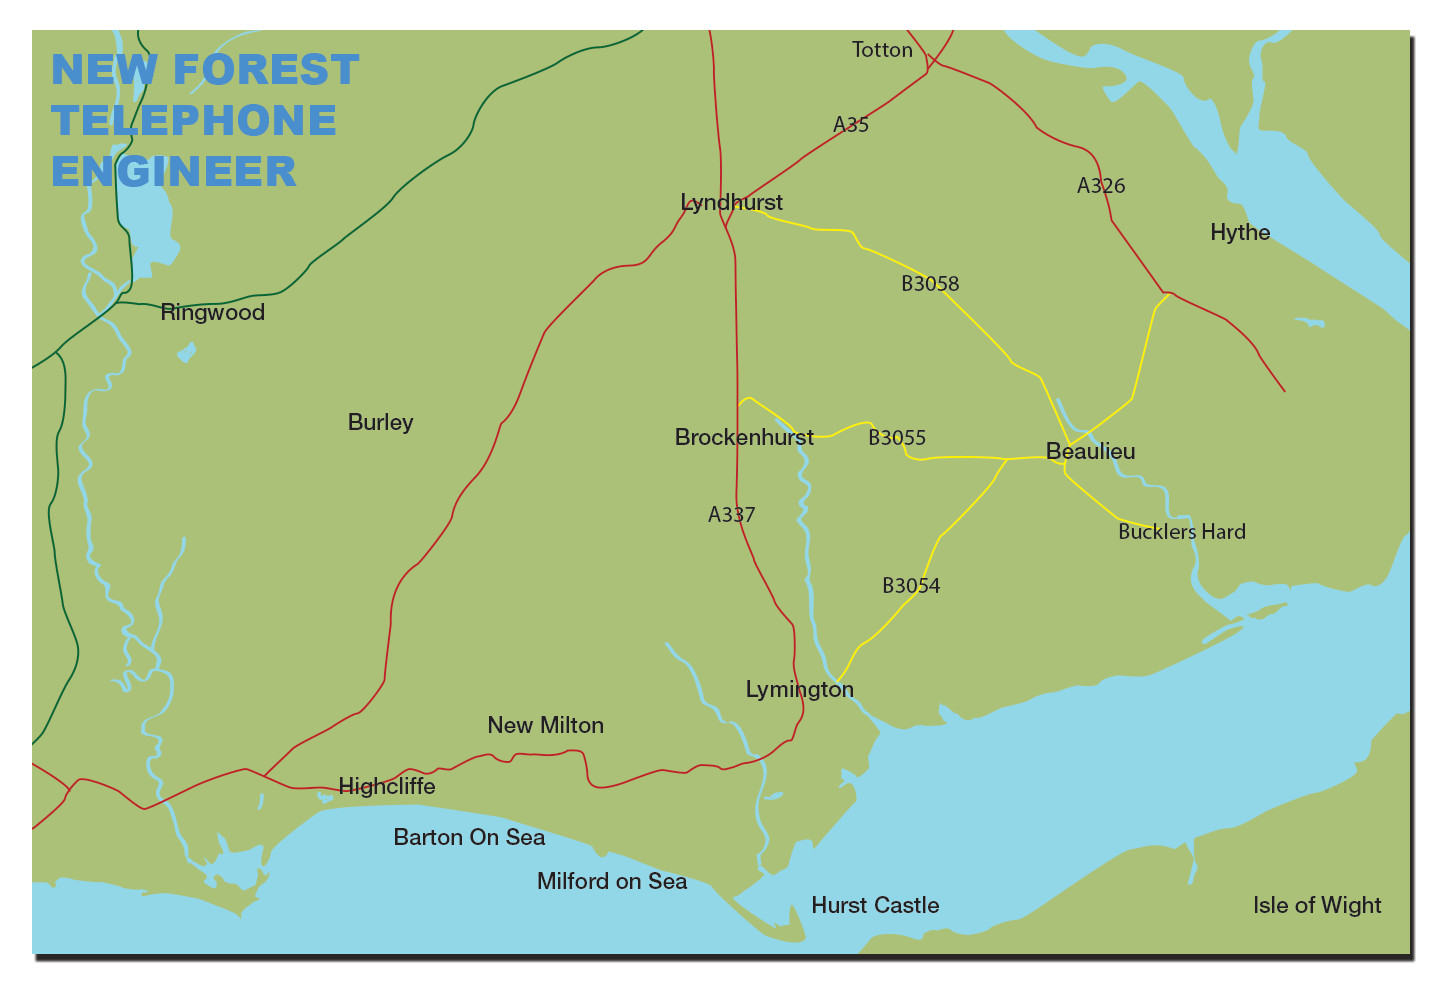 New Forest Telephone Engineer Service Area